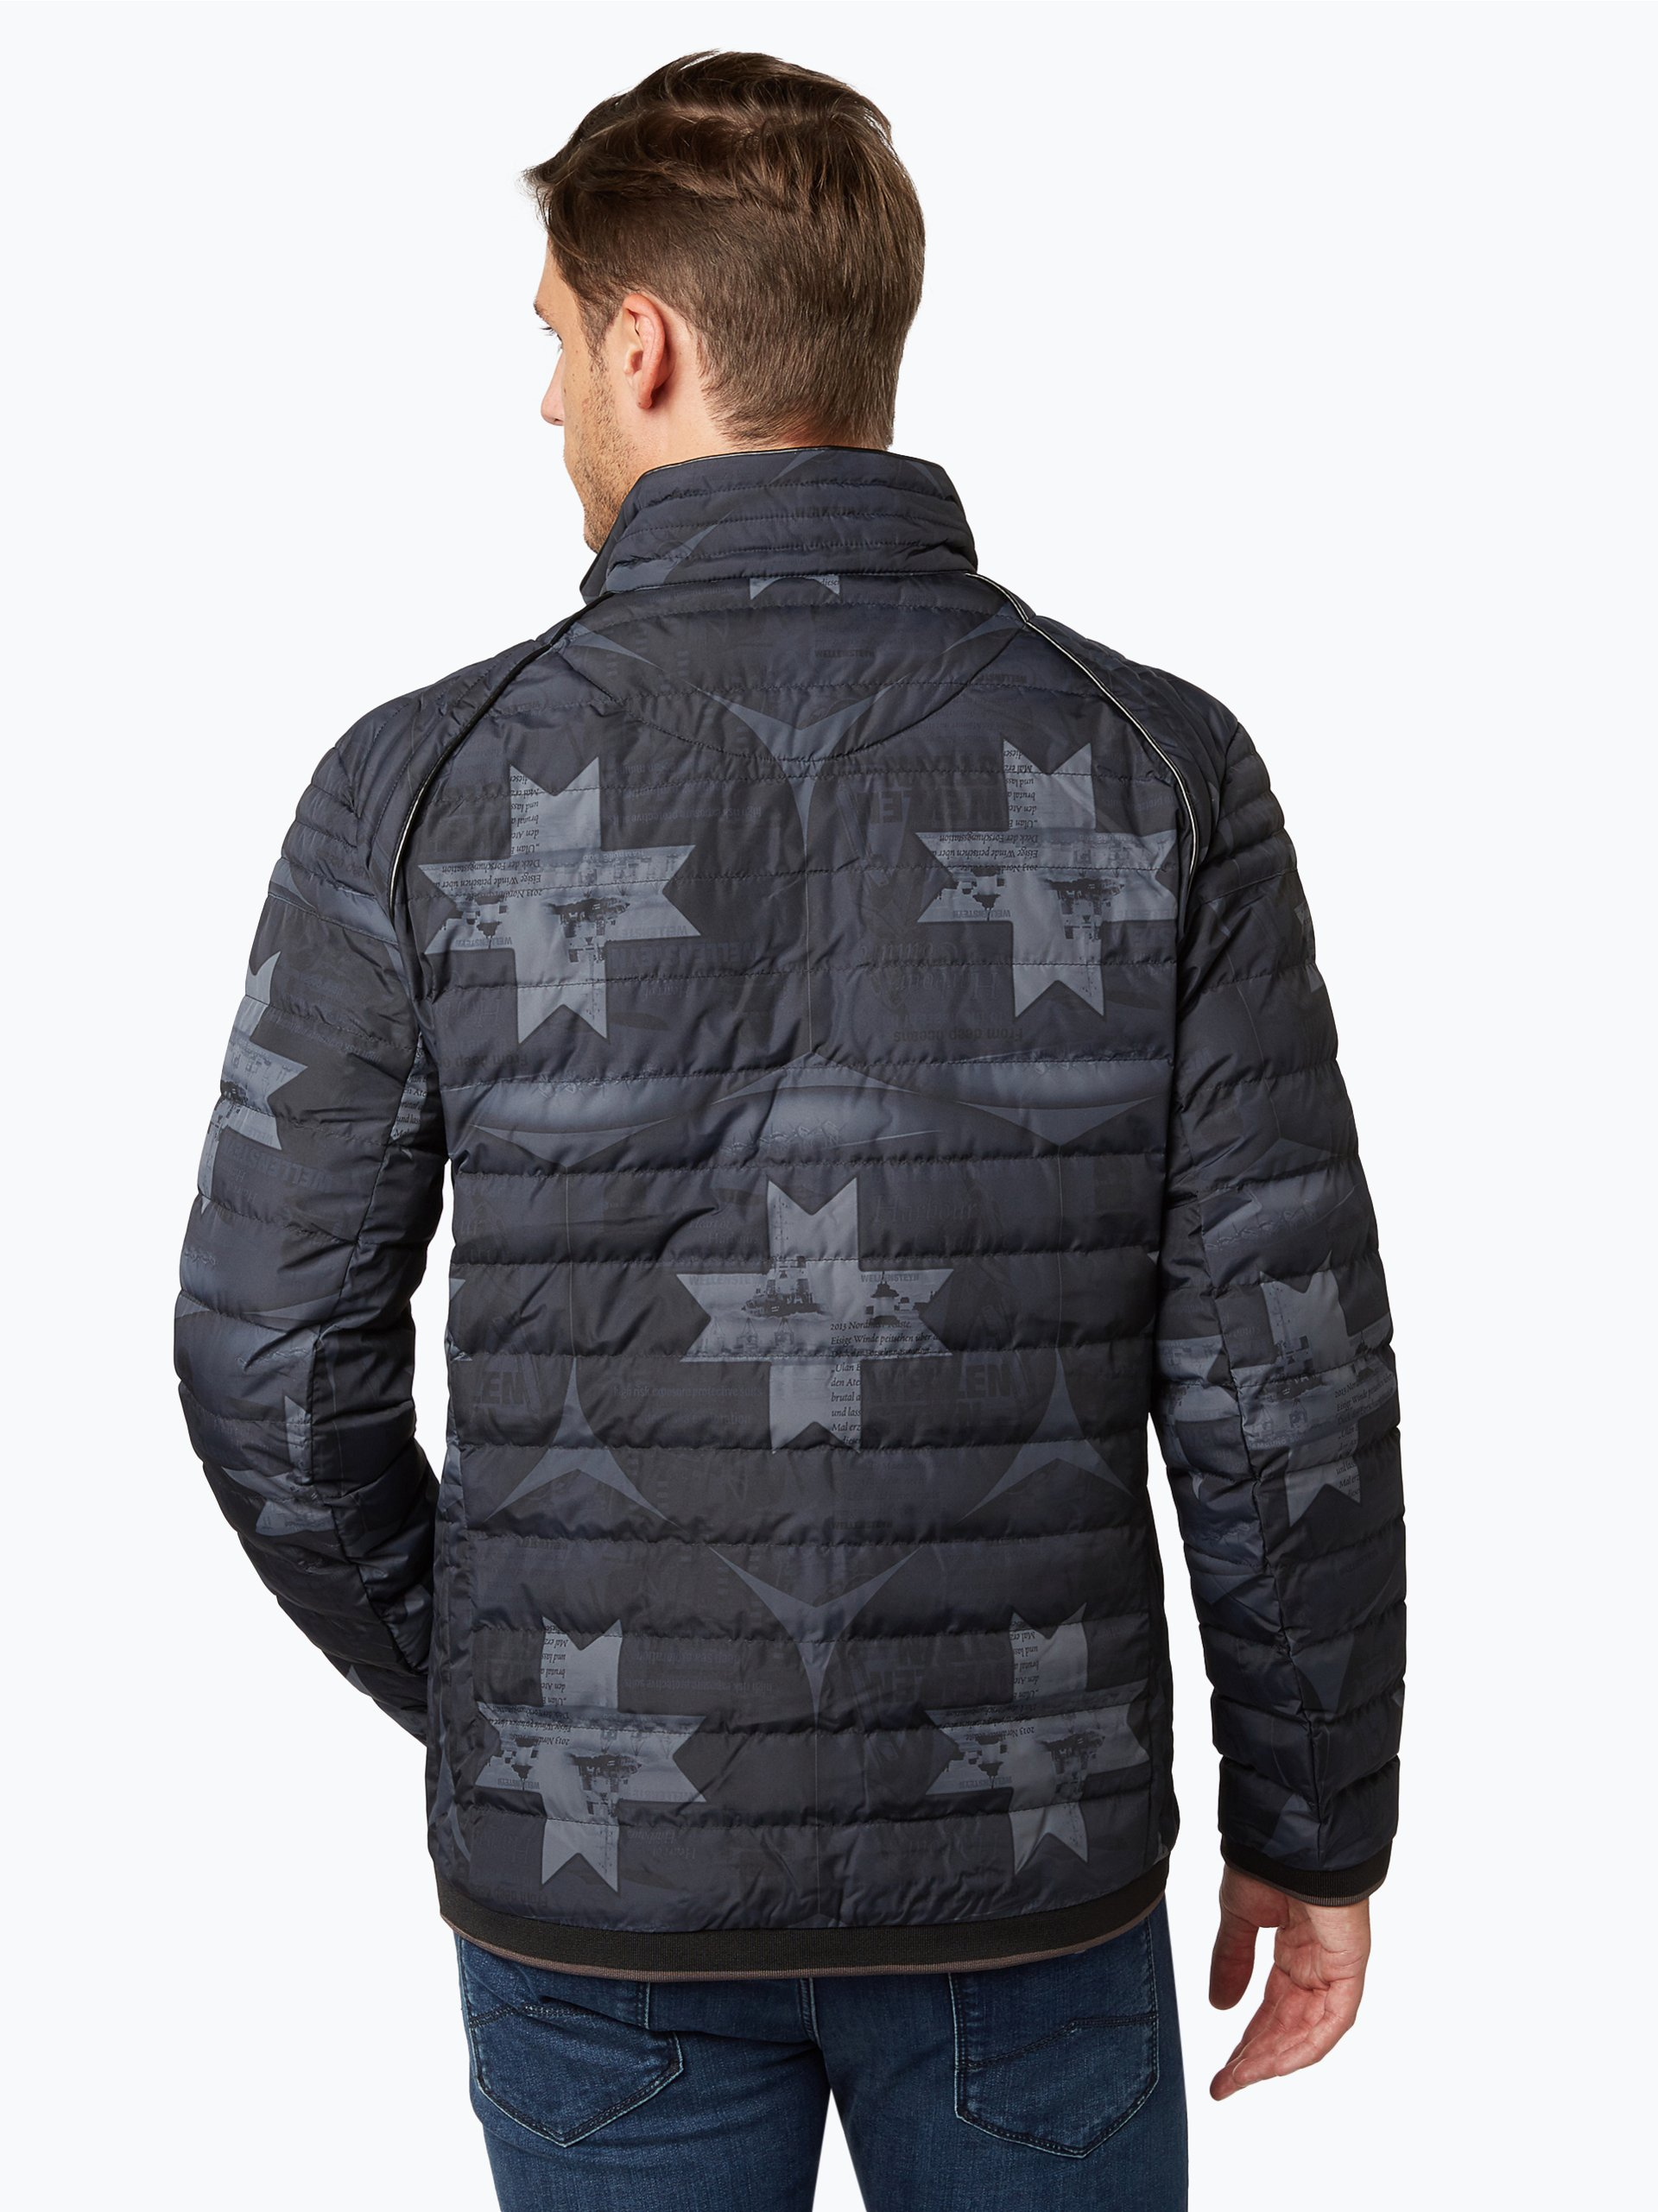 Wellensteyn Herren Funktionsjacke - Molecule Men